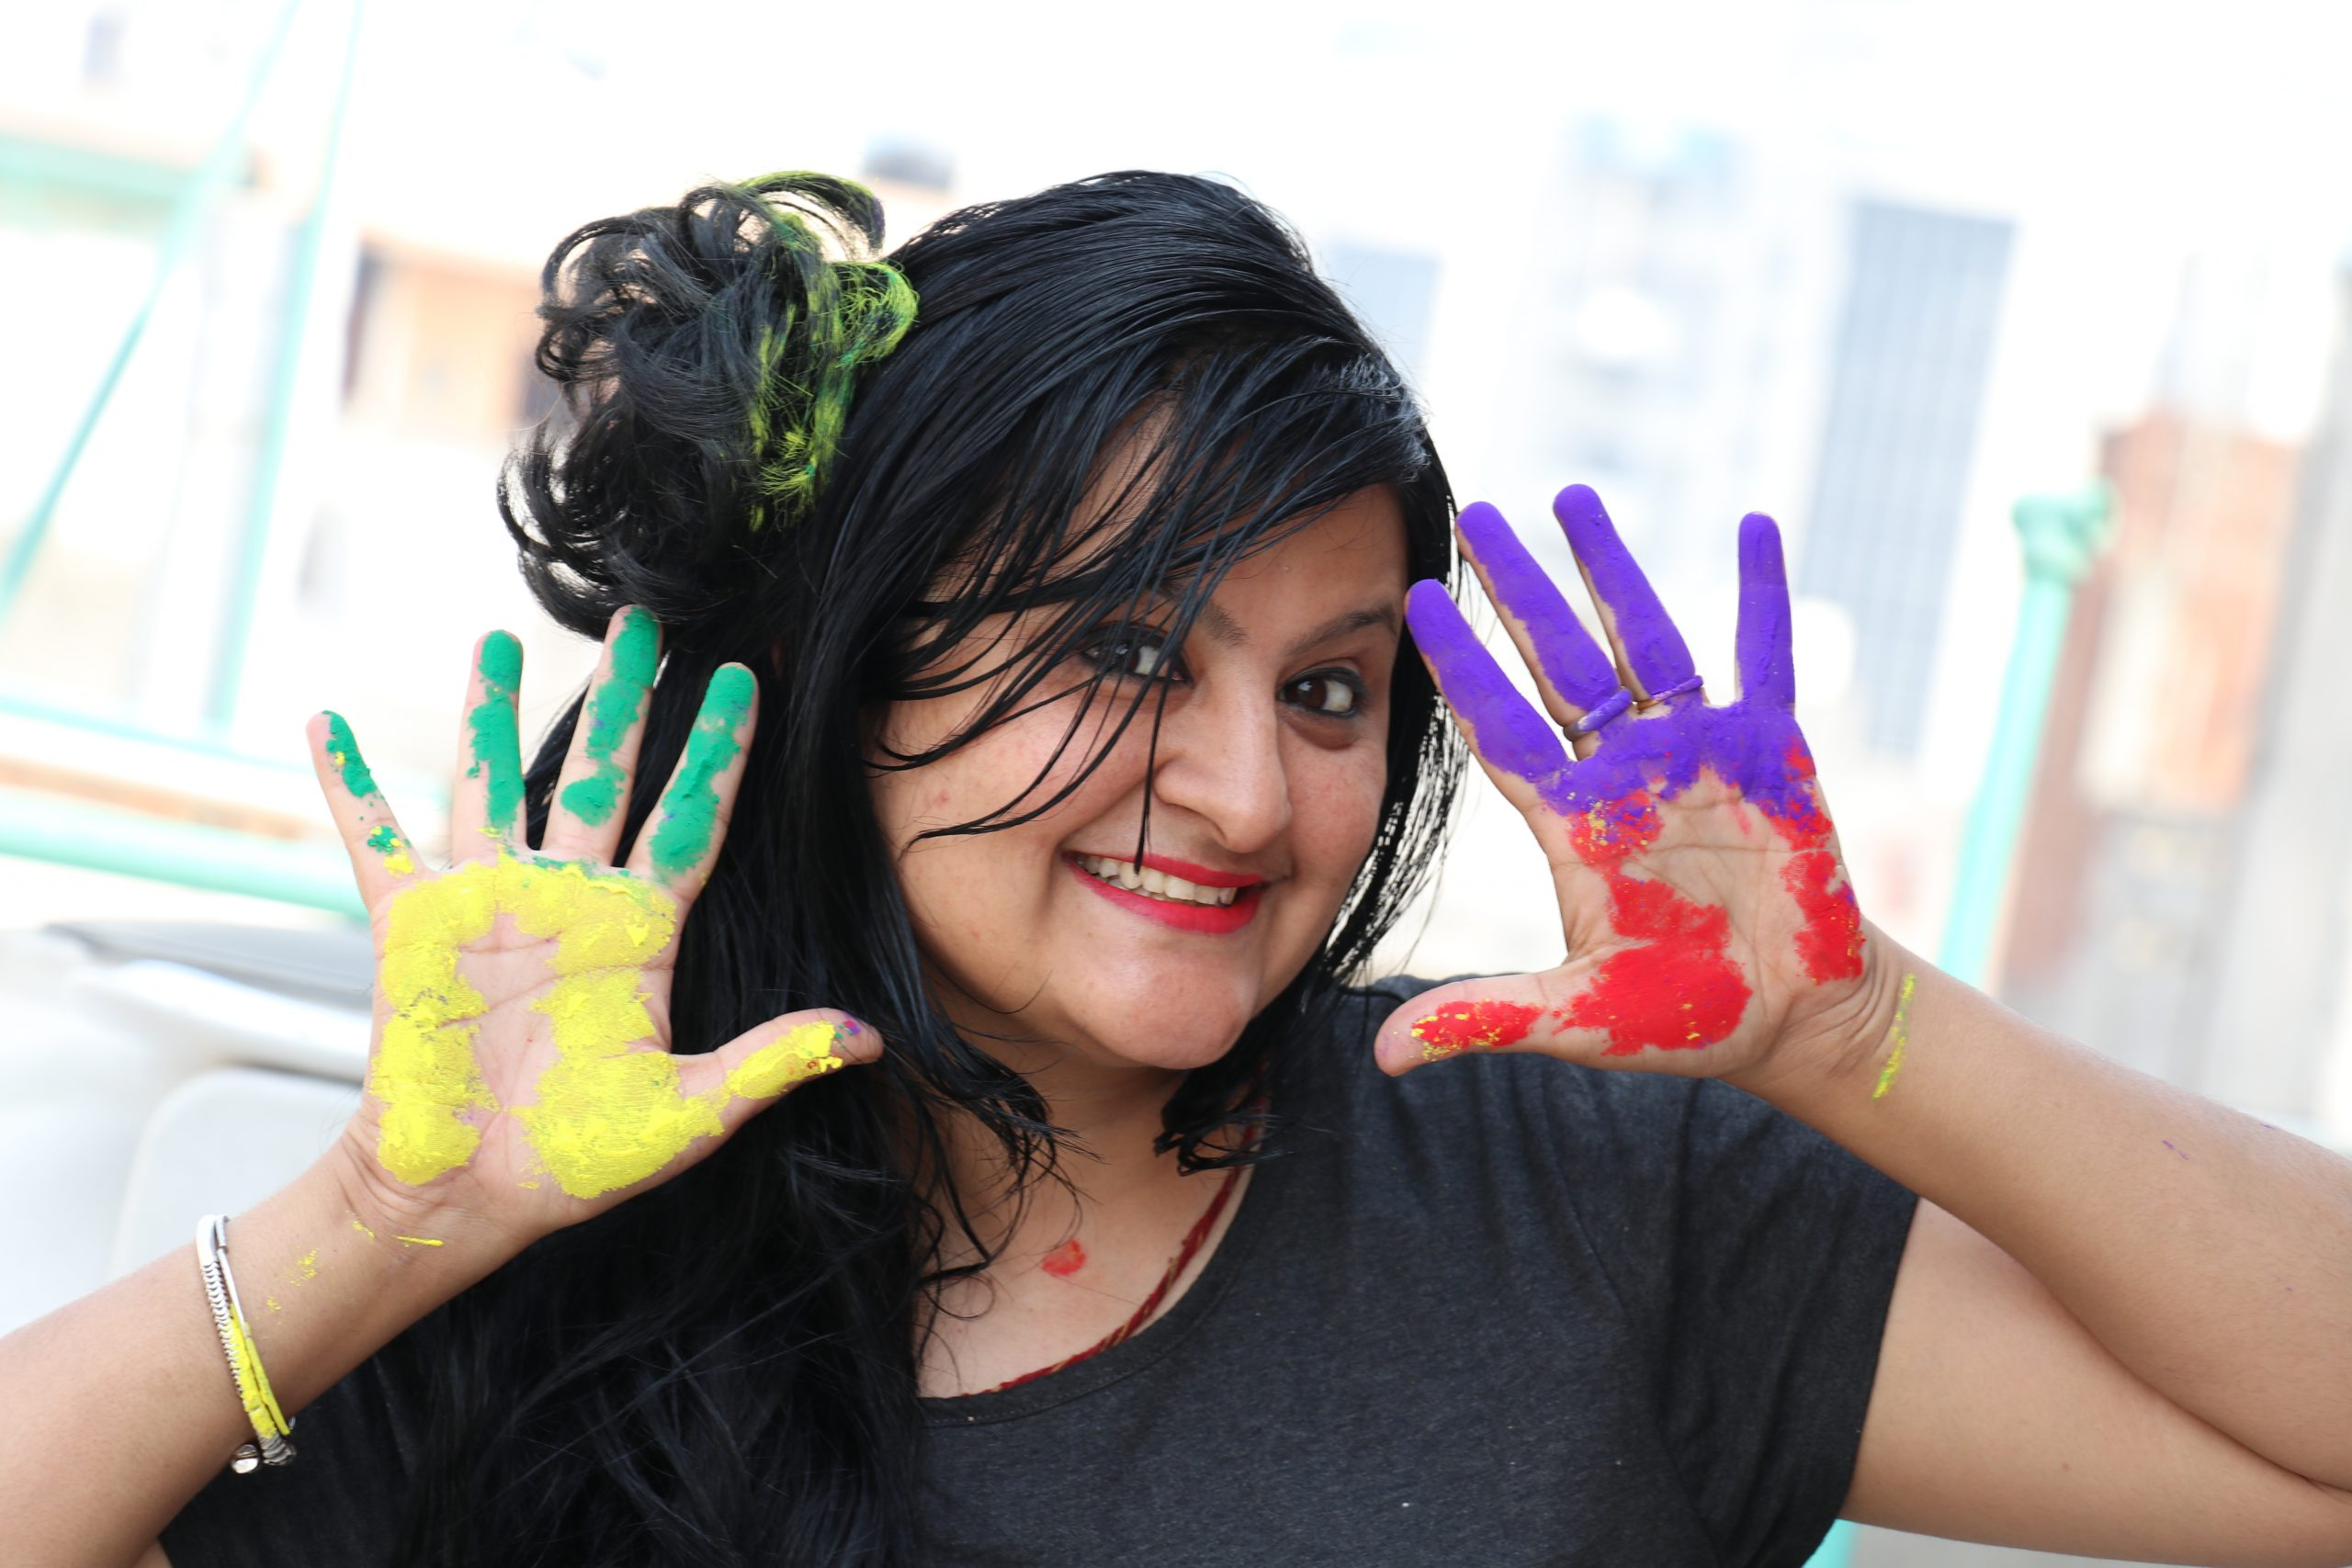 A happy girl showing her colorful hands